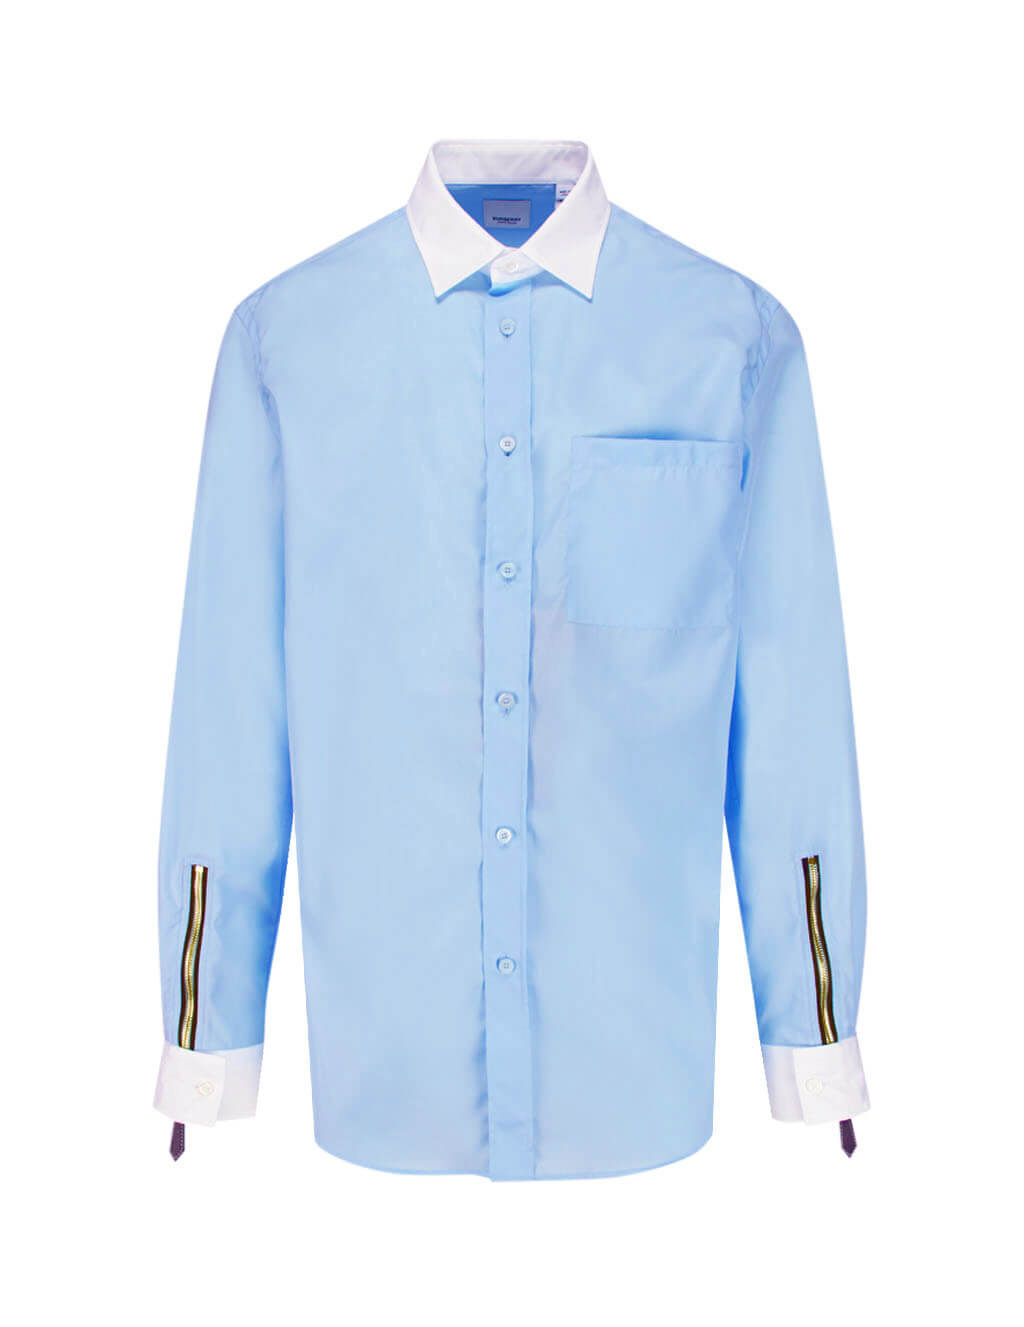 Burberry Men's Giulio Fashion Pale Blue Zip Detail Shirt 4558024A1397